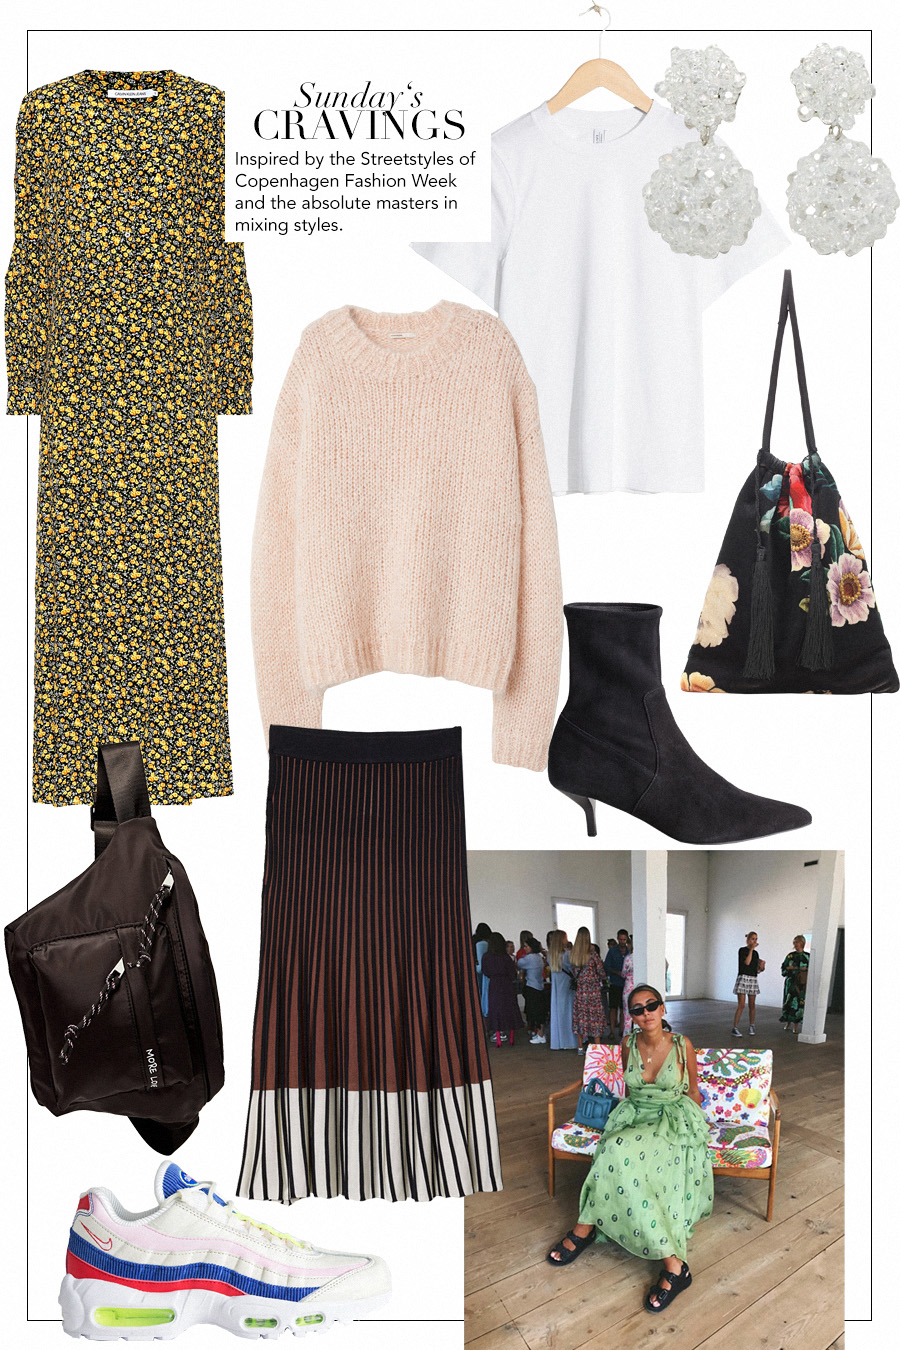 Attico Floral velvet pouch, Nike Air Max 95 SE sneakers, Calvin Klein Floral midi dress, H&M Mohair knit jumper, & Other Stories Basic t-shirt, Mango Beaded earrings, & Other Storis Suede sock boots, Stradivarius Belt bag, H&M. Knit skirt